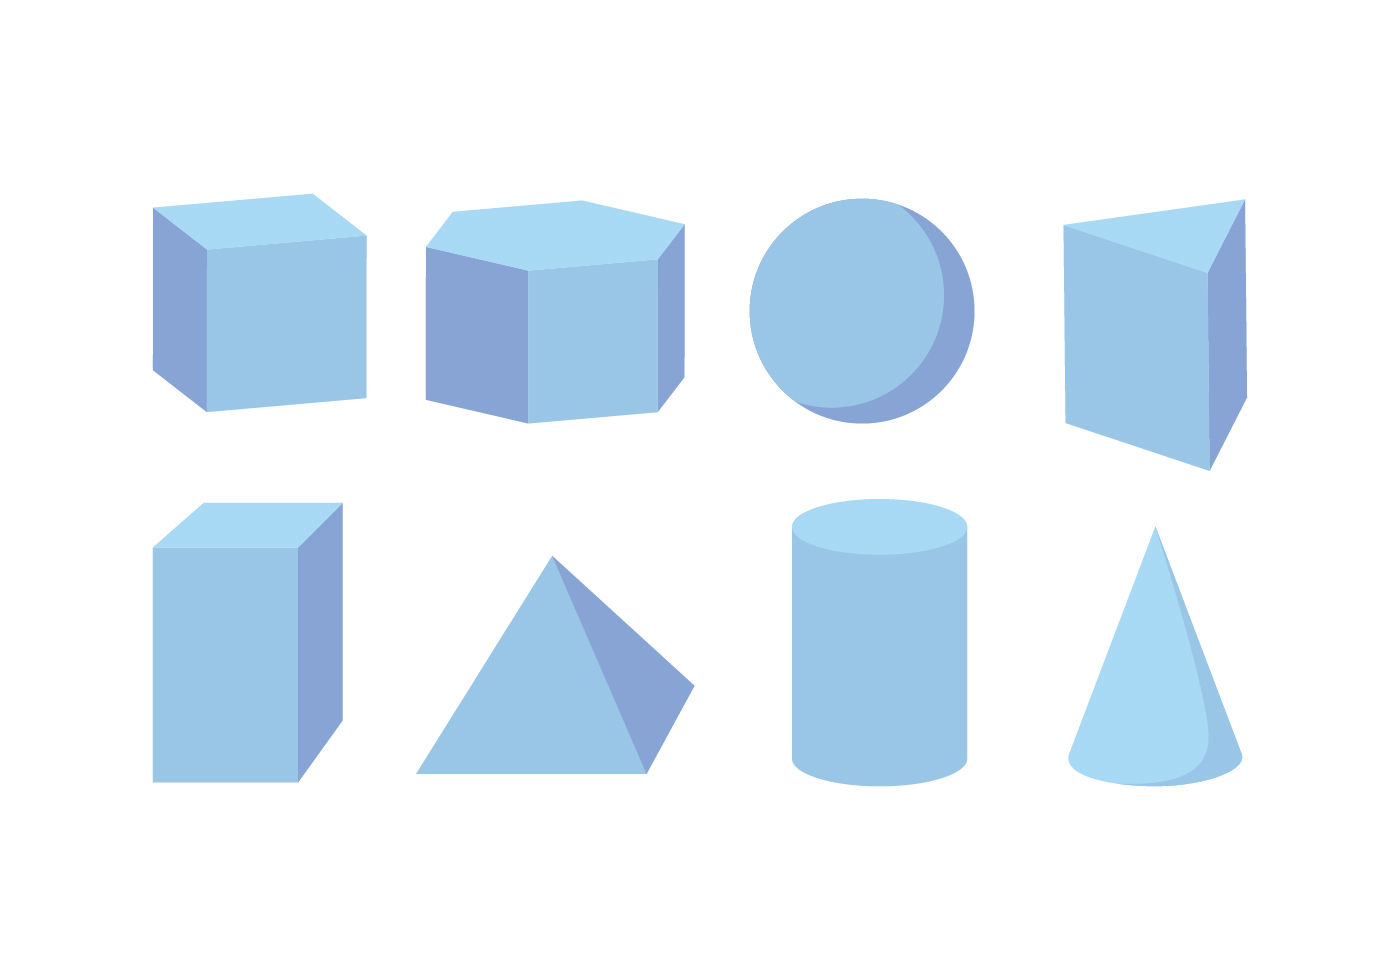 an introduction to 3d shapes icteachers - HD1400×980